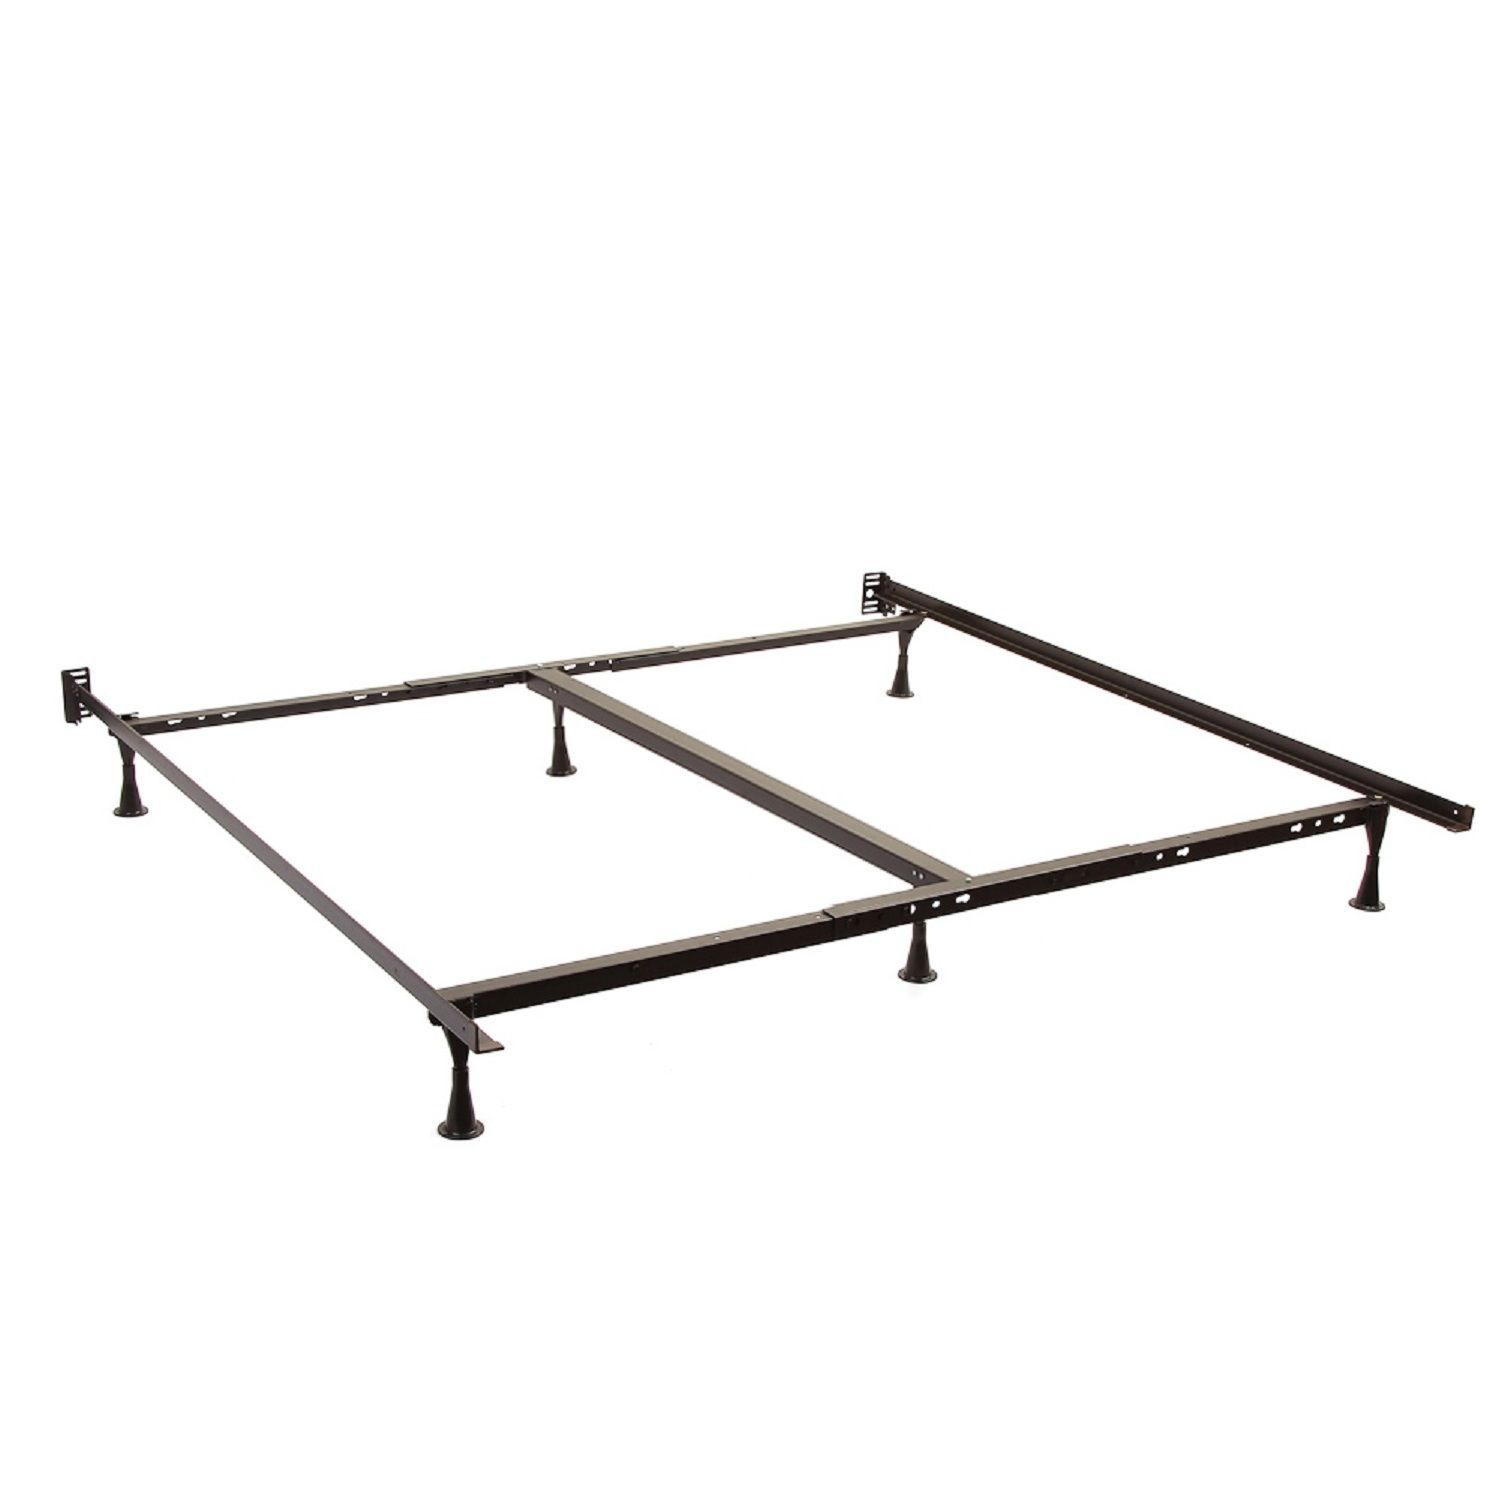 Queen King Cal King Angle Iron Steel Bed Frame With 2 Inch